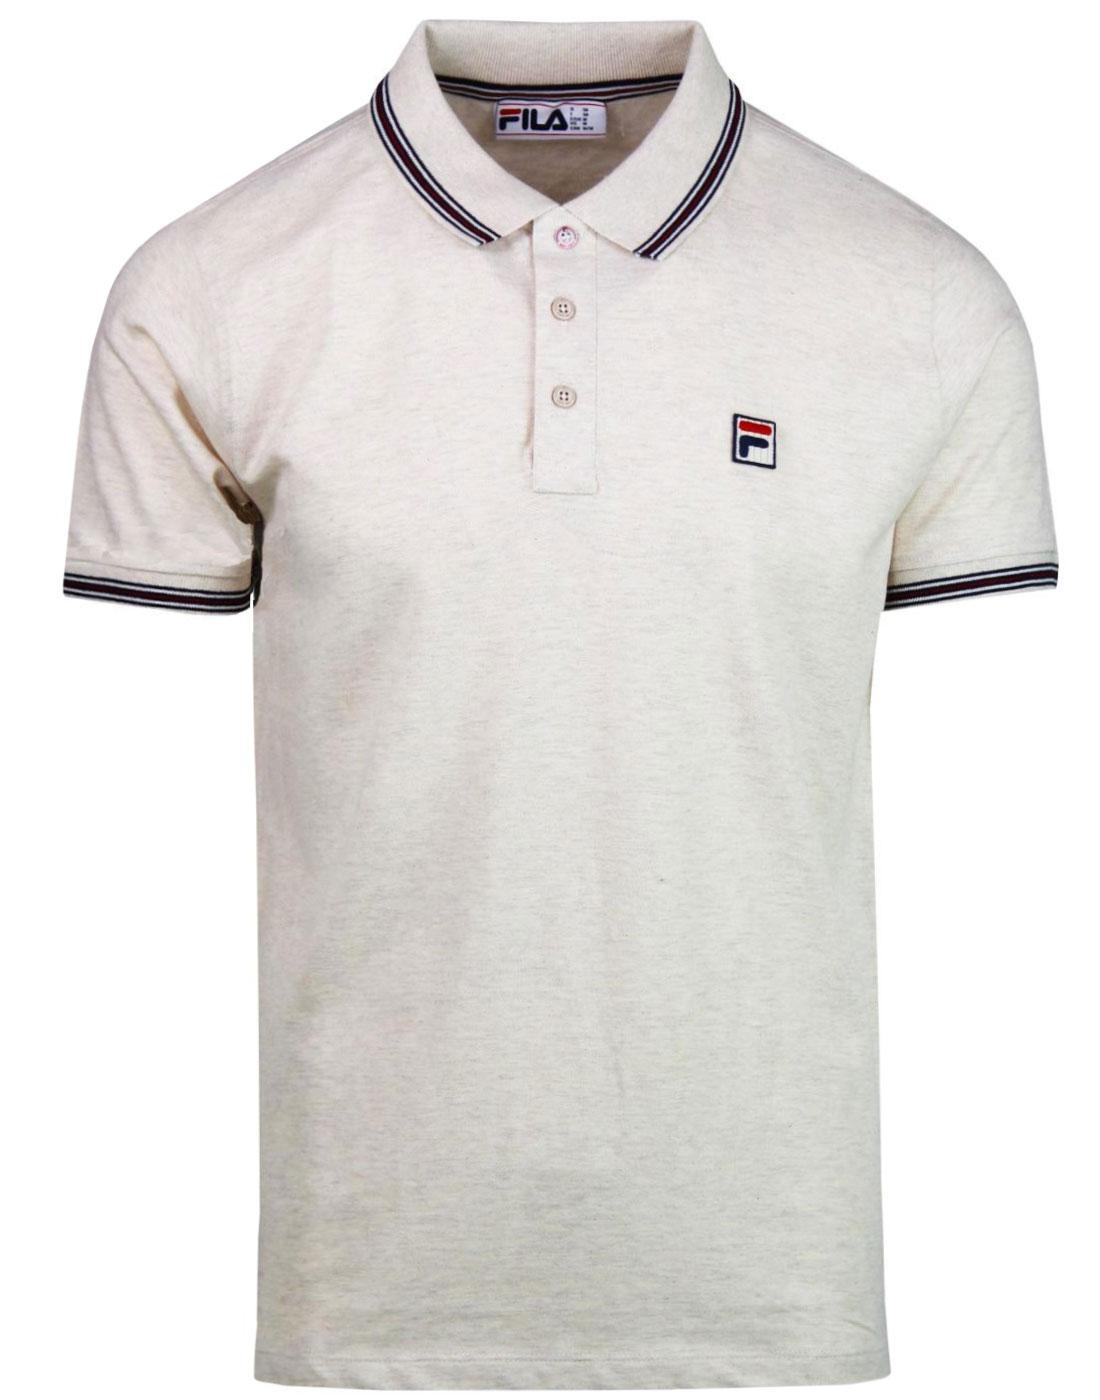 Matcho FILA VINTAGE 70s Retro Pique Polo Top ECRU